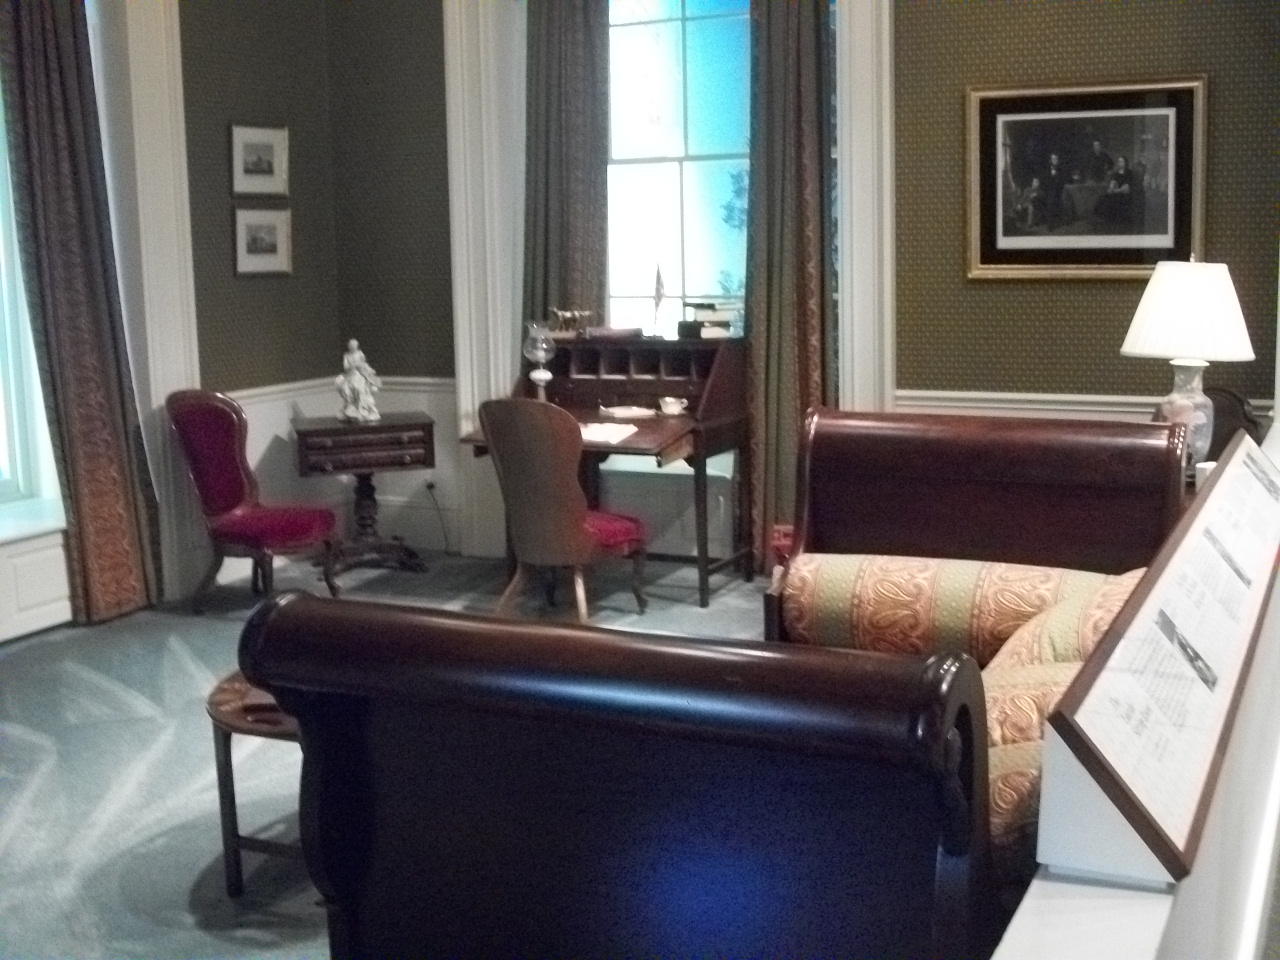 nixon oval office. most presidential libraries have replicas of the presidents oval office nixon wanted a replica linocln sitting room instead